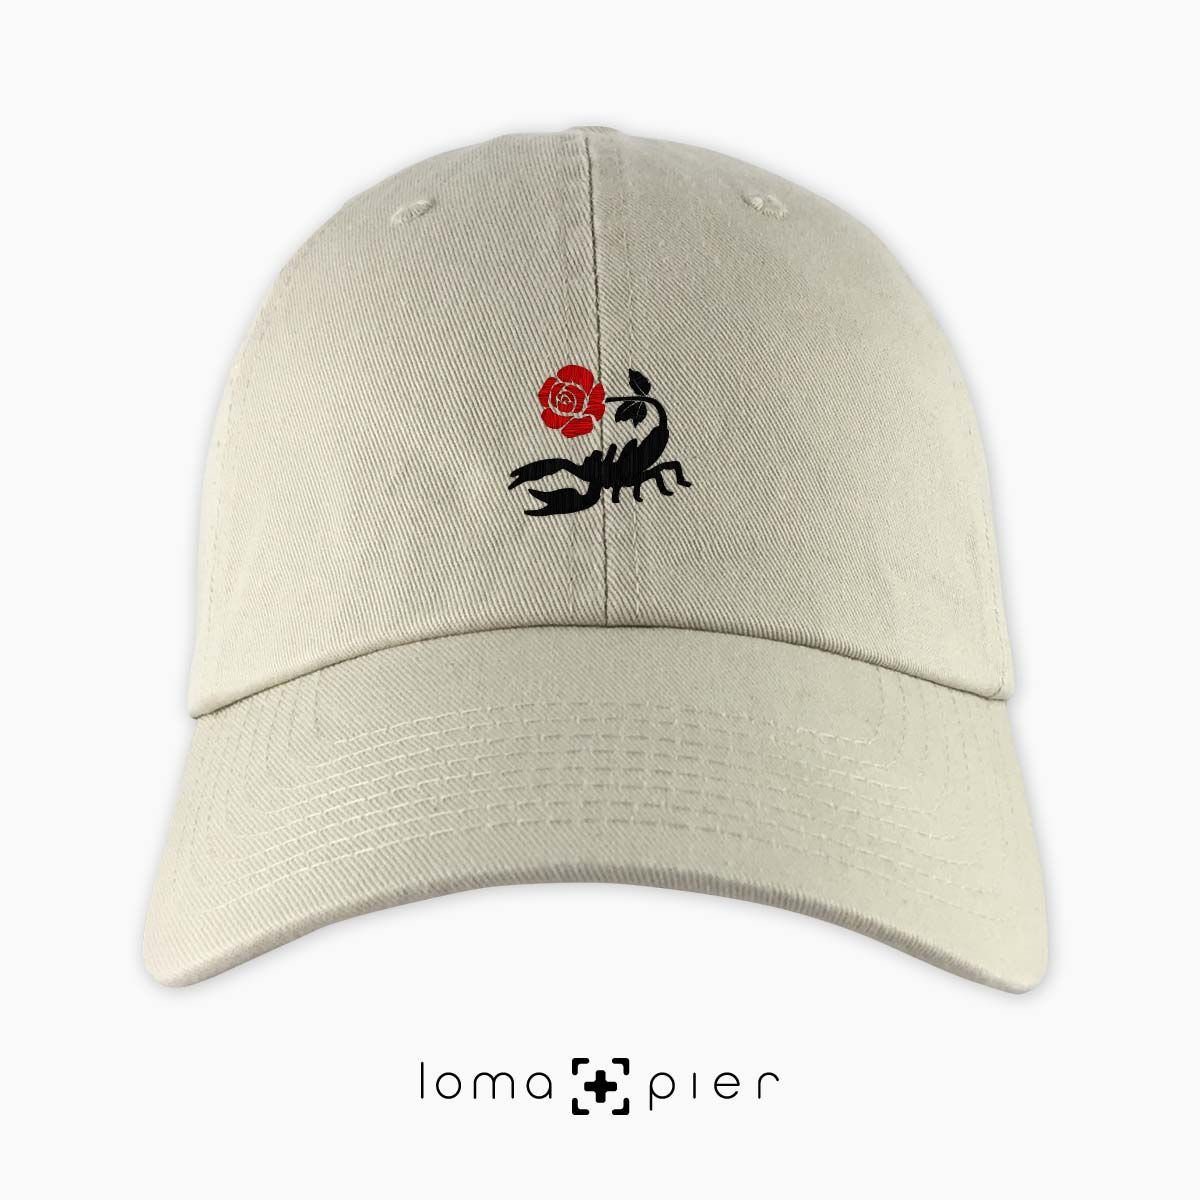 c39973cc78e64 SCORPION ROSE icon embroidered on a khaki unstructured dad hat with red and  black thread by loma+pier hat store made in the USA